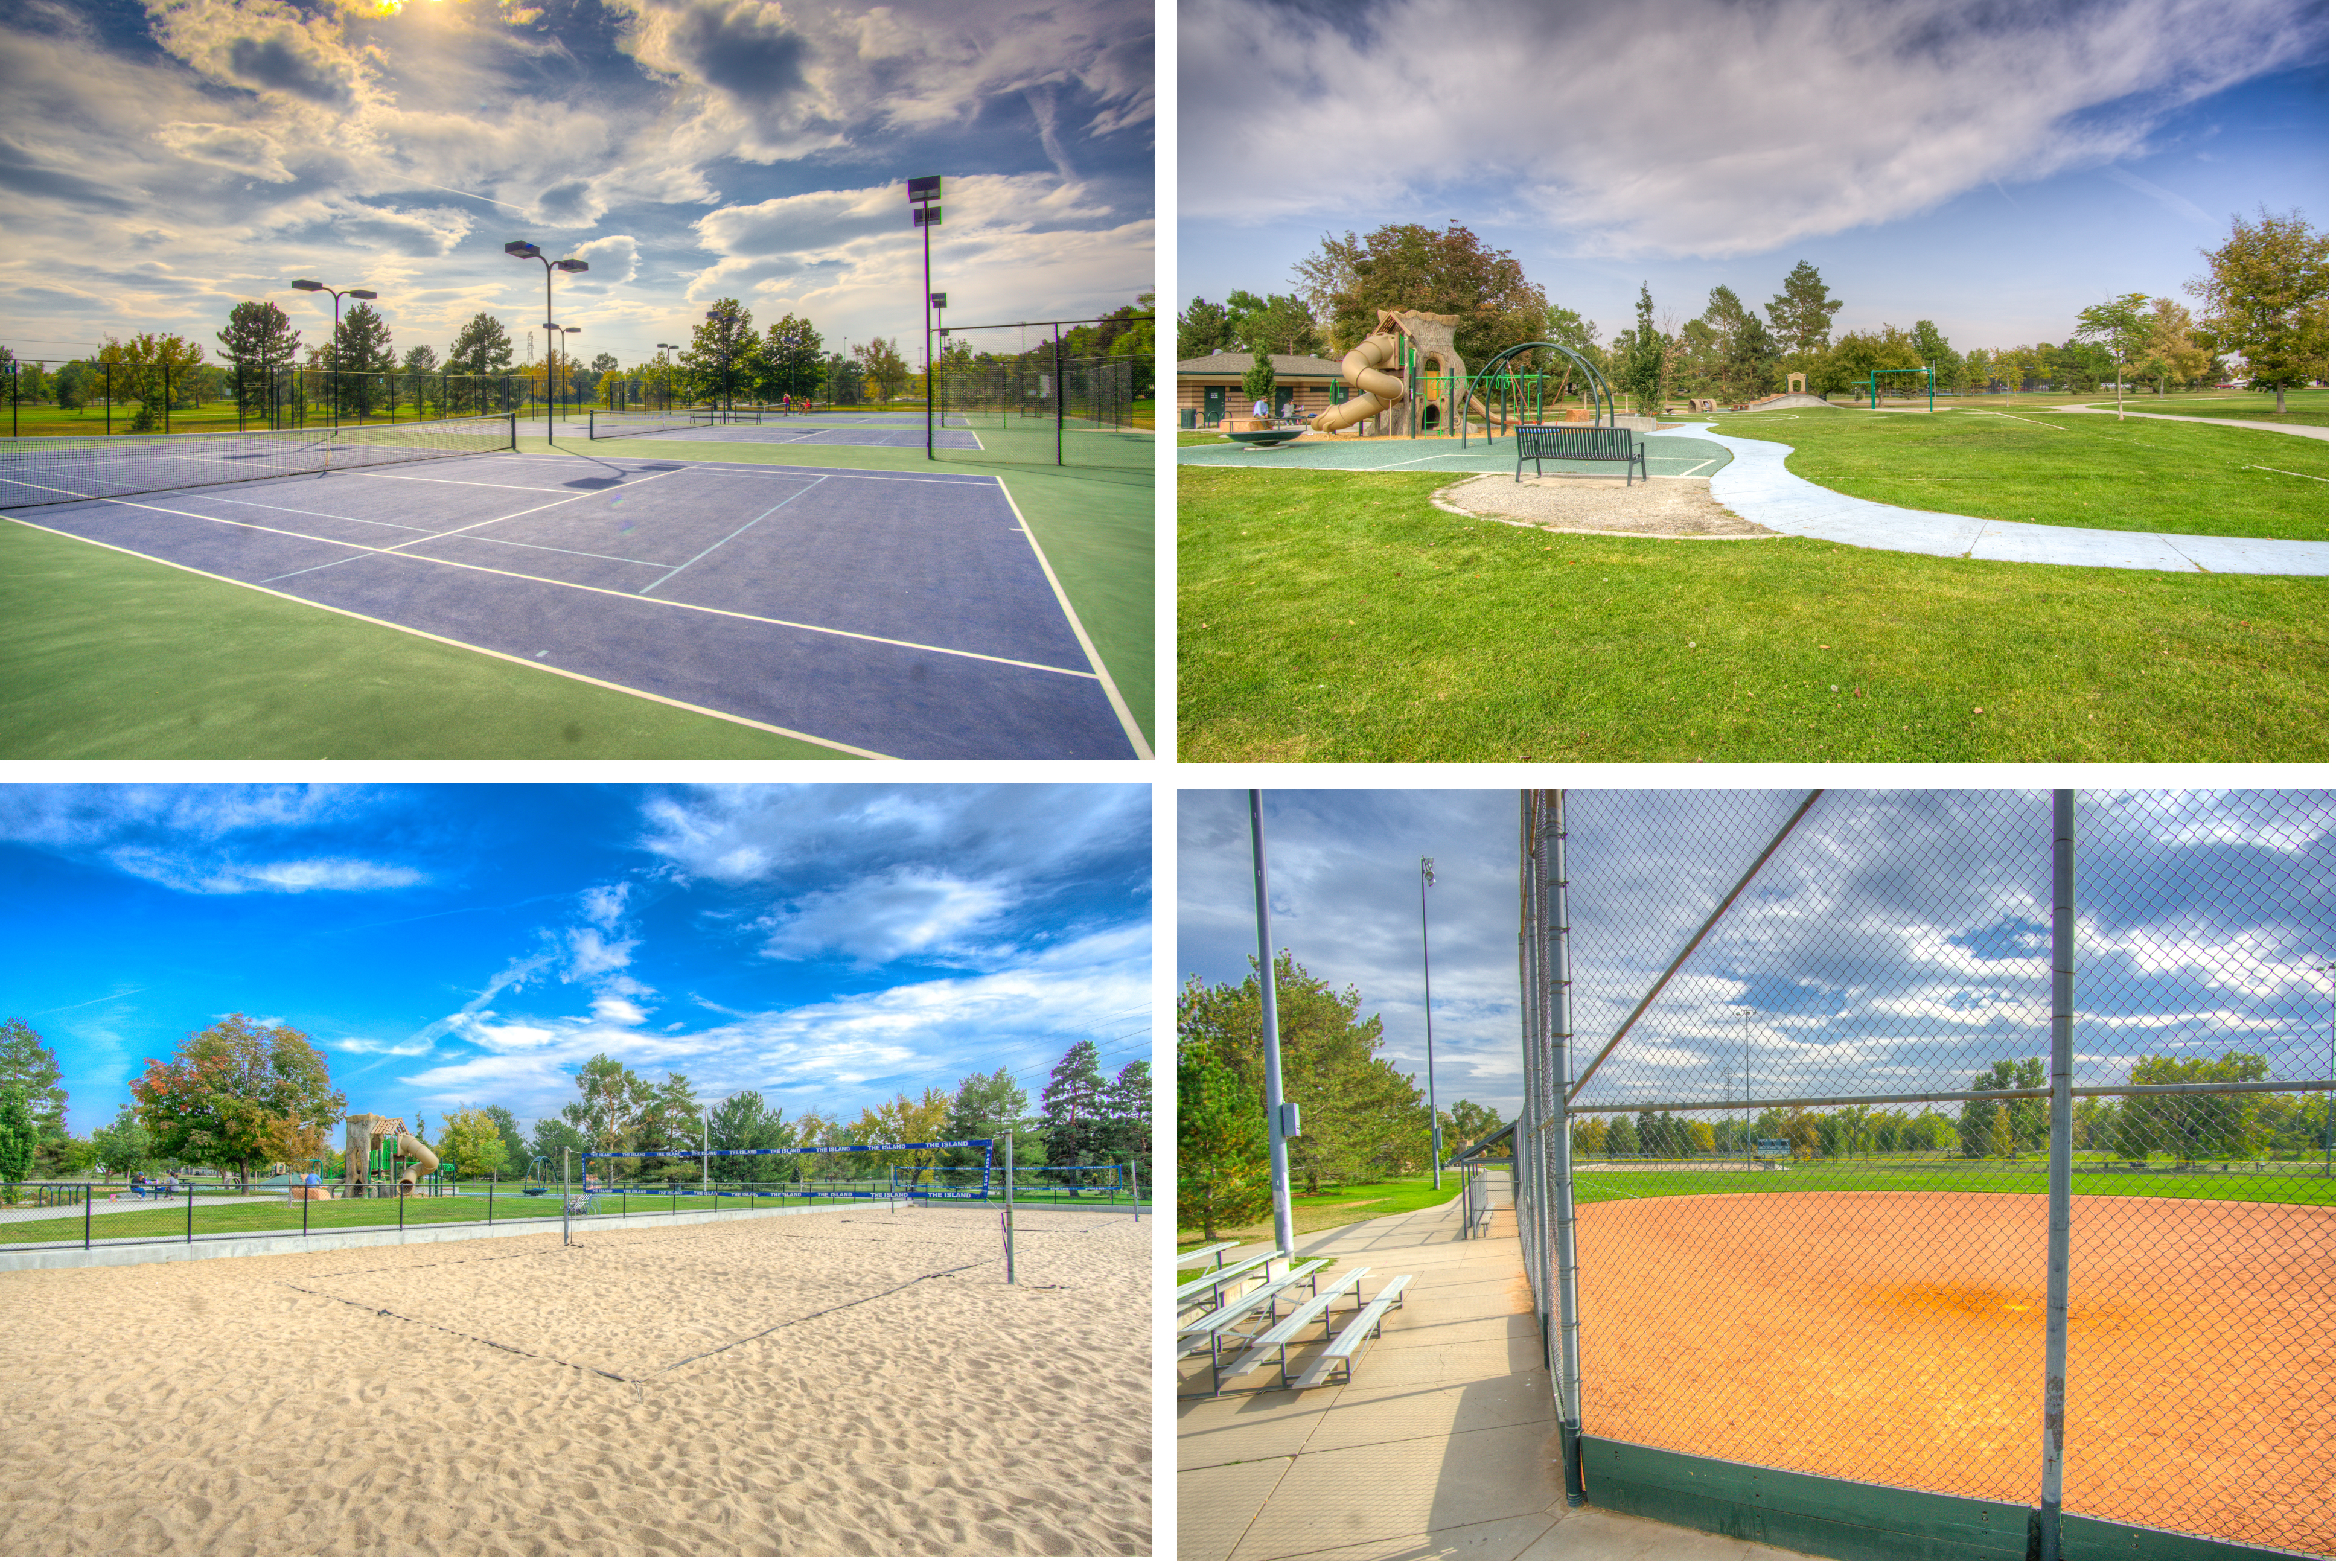 Tennis courts, volleyball, ballfields, playgrounds